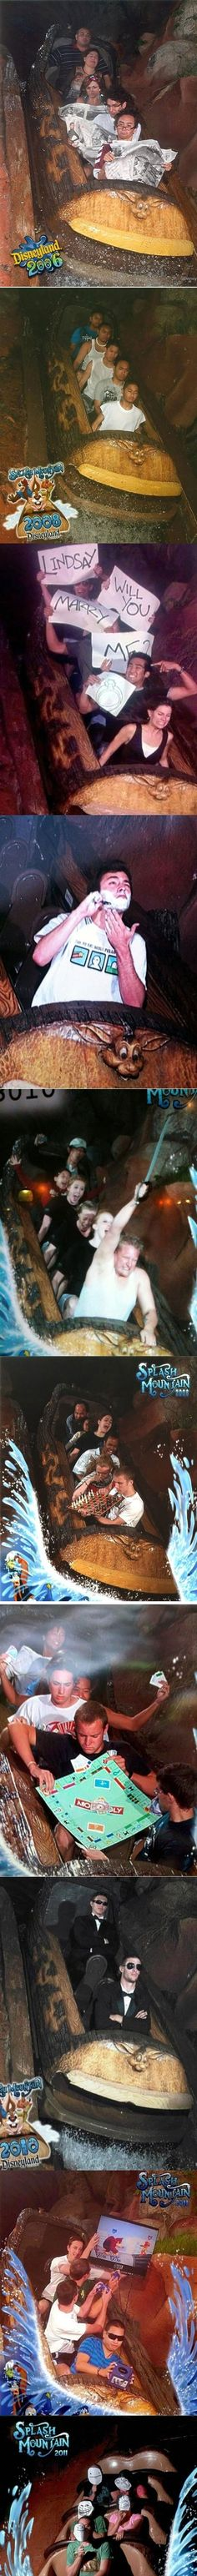 Best of Disneyland's Splash Mountain. I have to bring a sword next time.